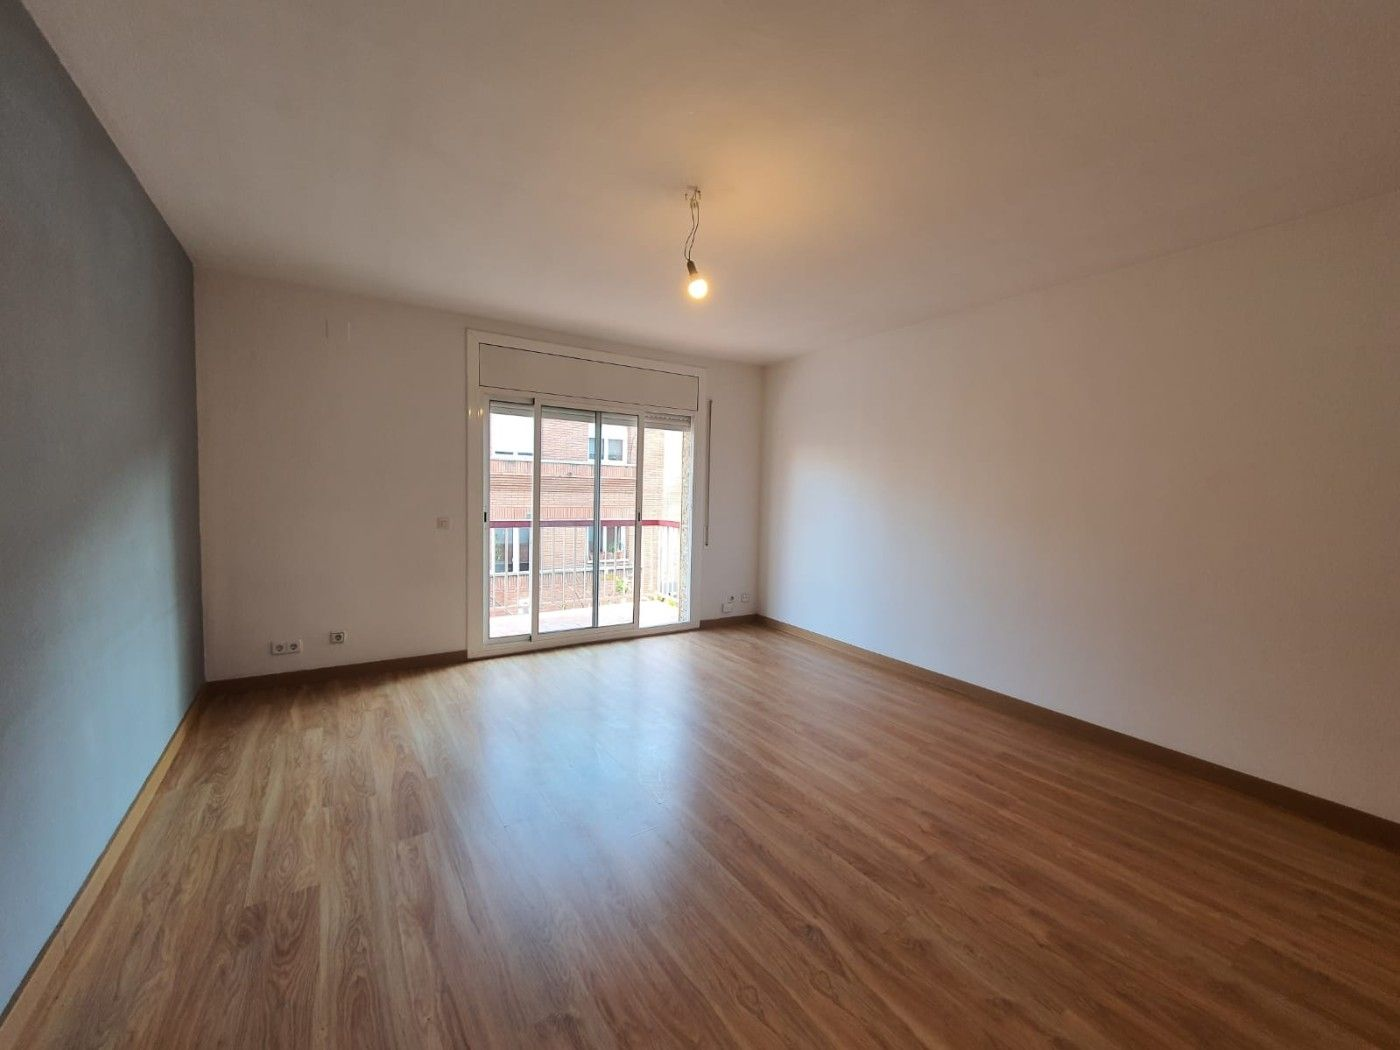 Rent Flat in Carrer baltasar d´espanya, 15. Grande y luminoso